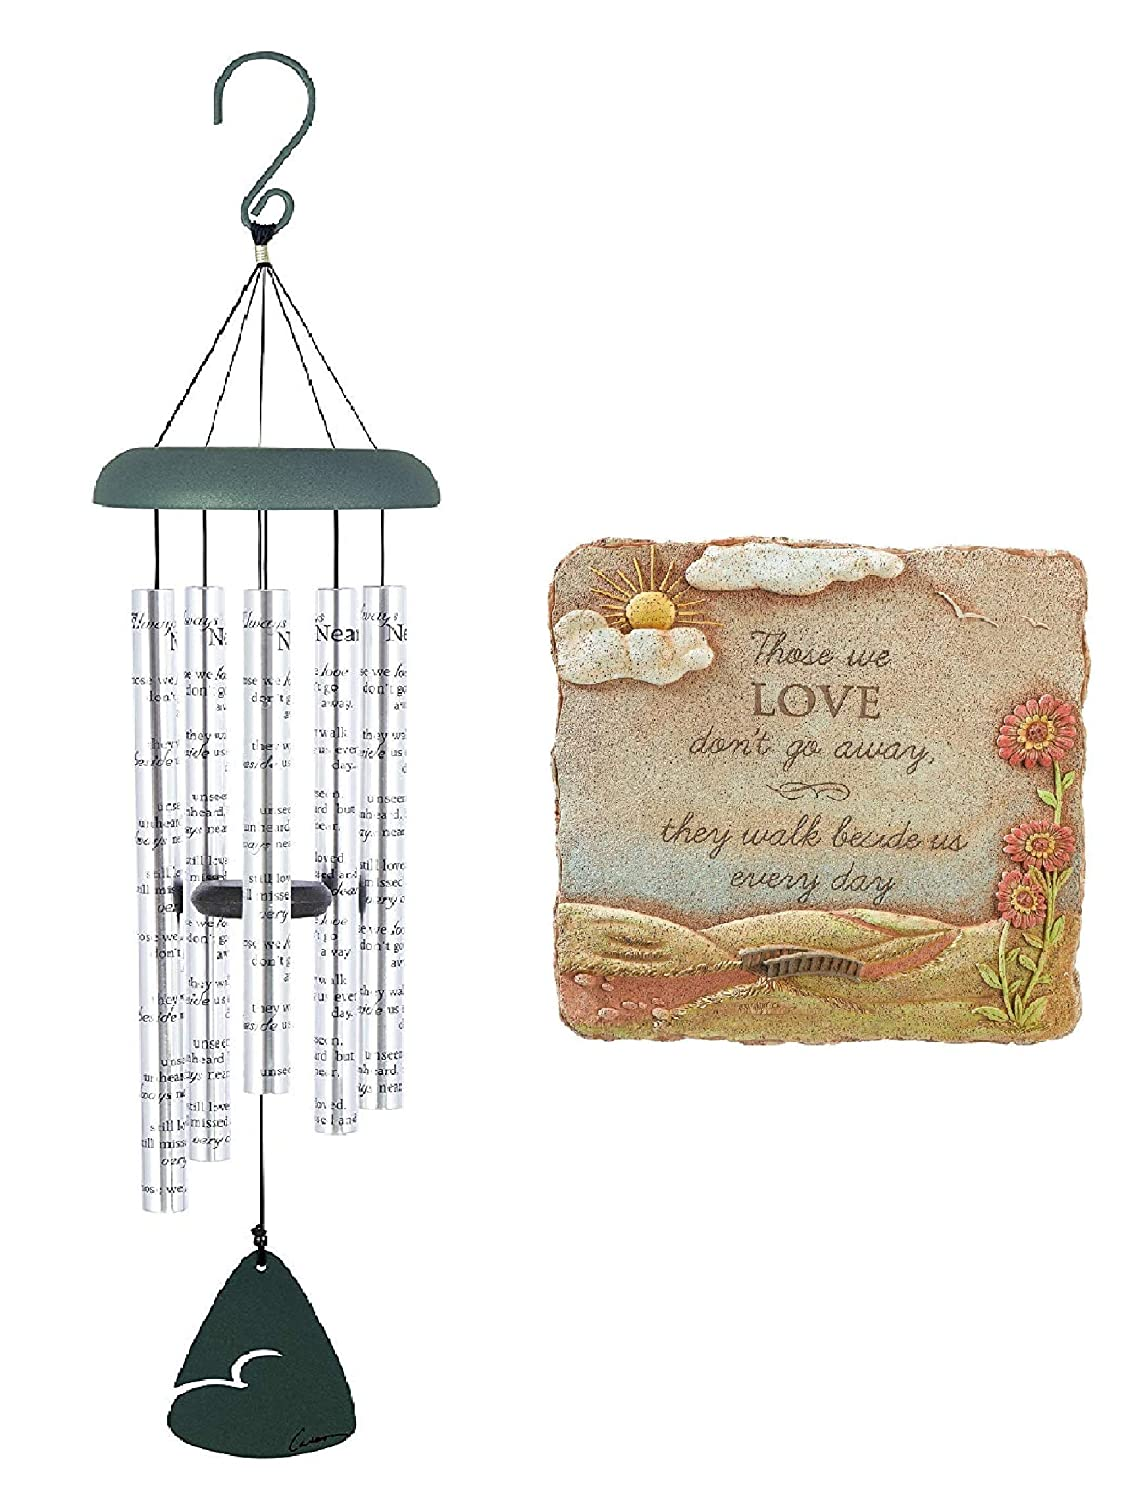 from Grassland Roads Naturesroom Sympathy Bereavement Gift Set Carson Home Accents 62913 Always Near Sonnet Memorial Wind Chime with Popular Garden Stone Plaque Those We Love Dont